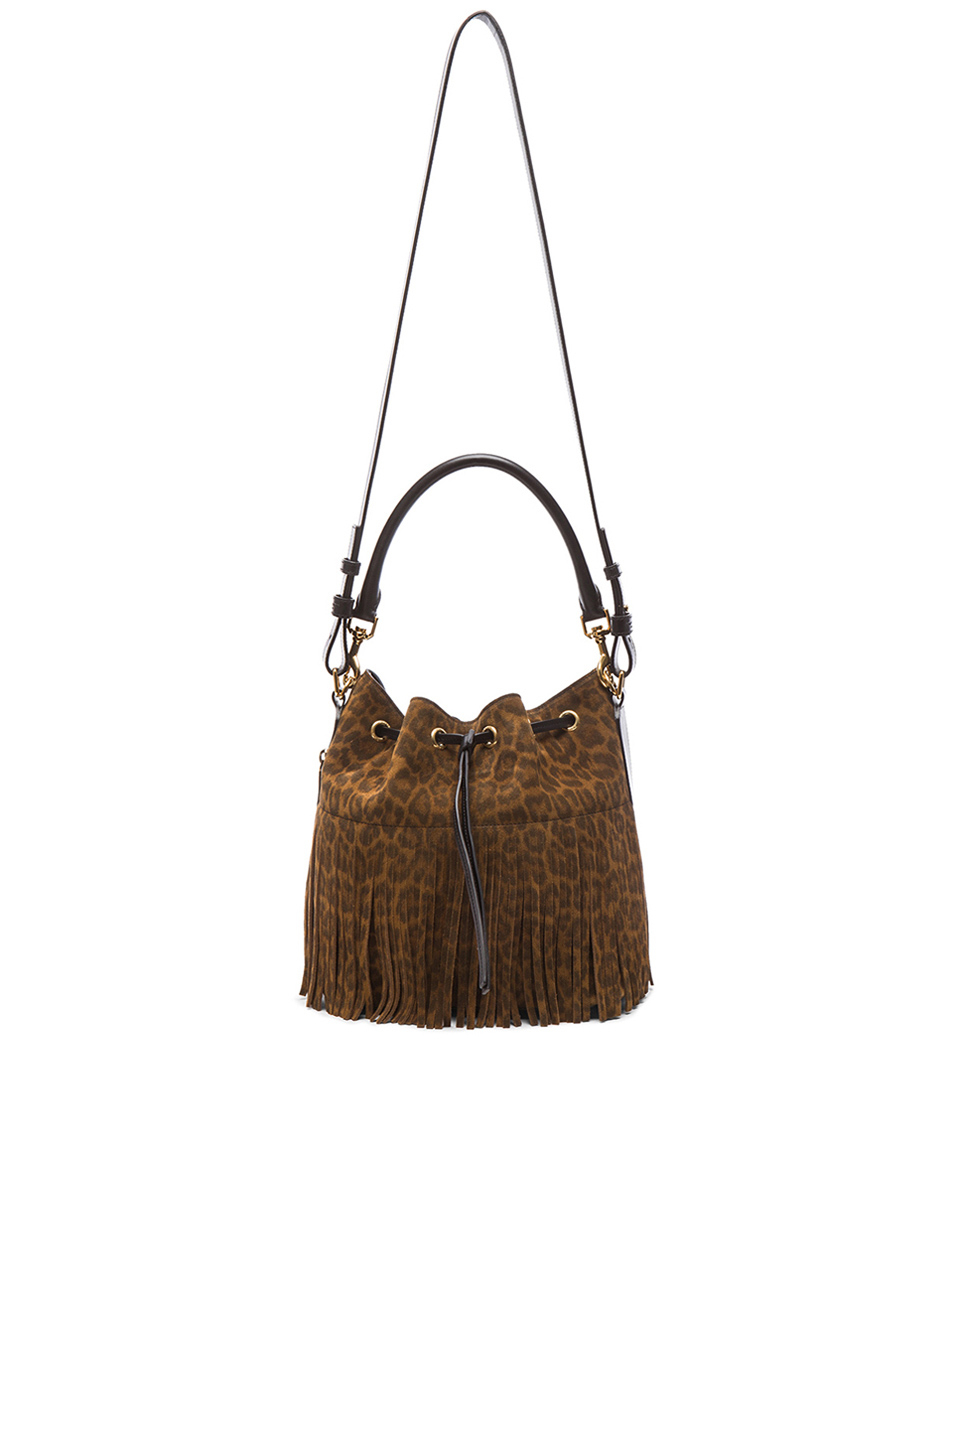 ysl handbag - emmanuelle small suede fringe hobo bag, tan